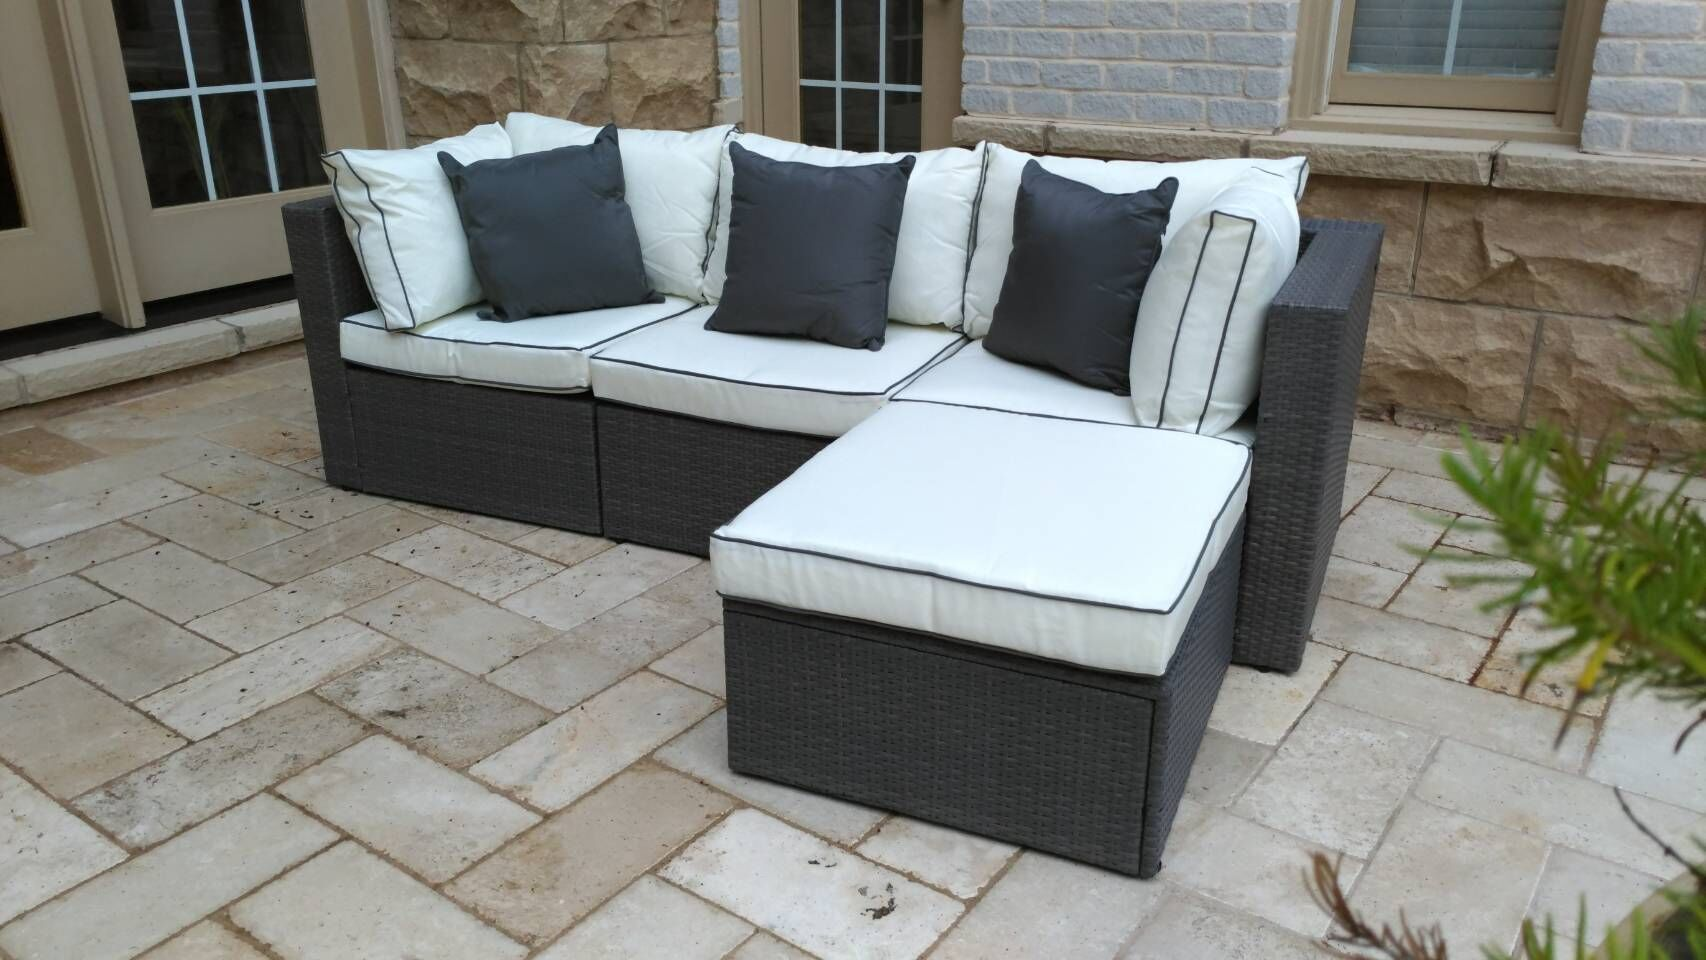 Burruss Patio Sectional with Cushions Fabric: Off-White/ Gray